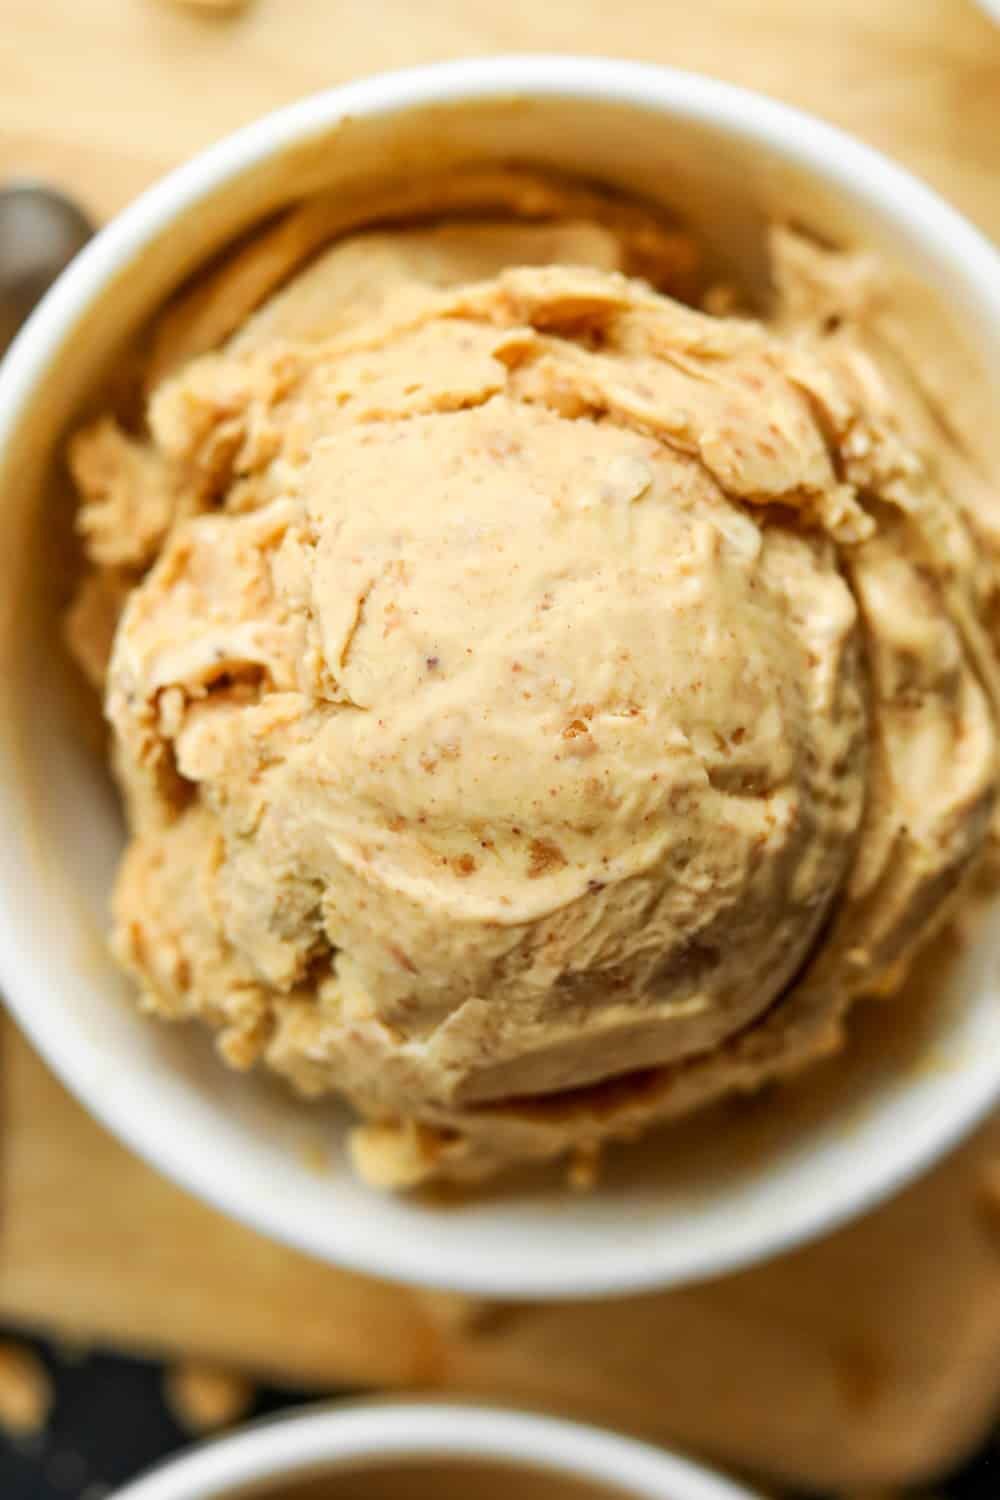 A white bowl filled with peanut butter ice cream on a wooden cutting board.